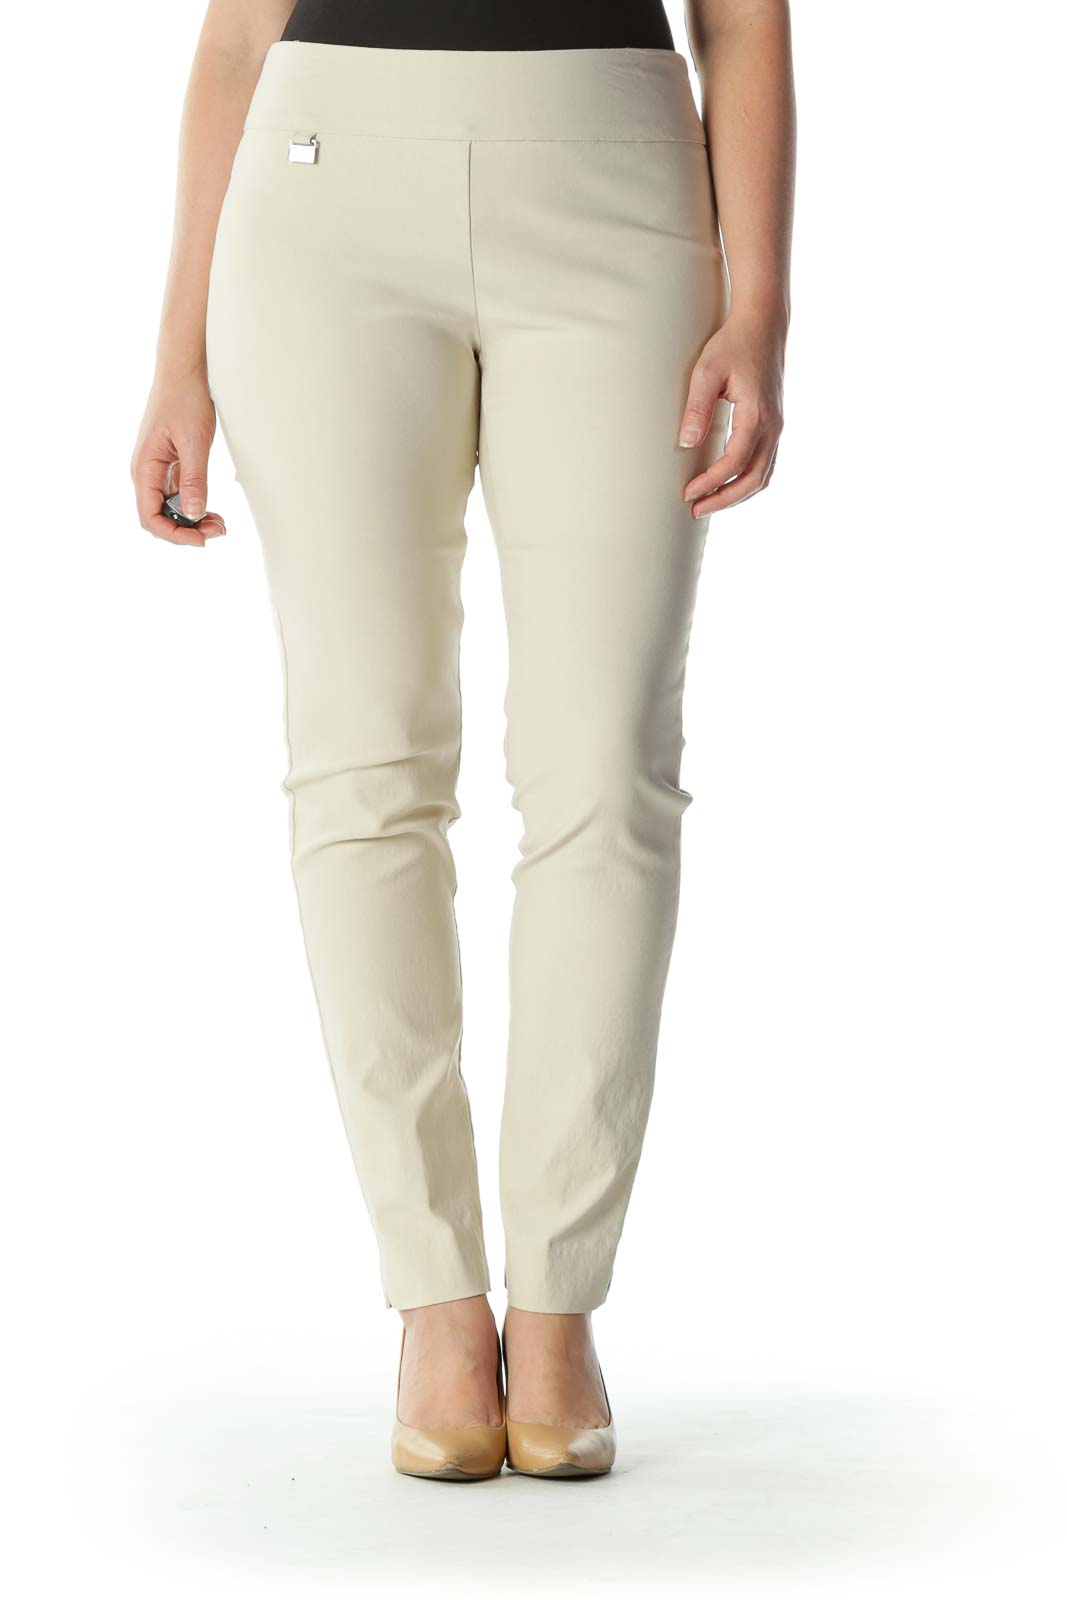 Beige Mid Rise Stretchy Skinny Pants